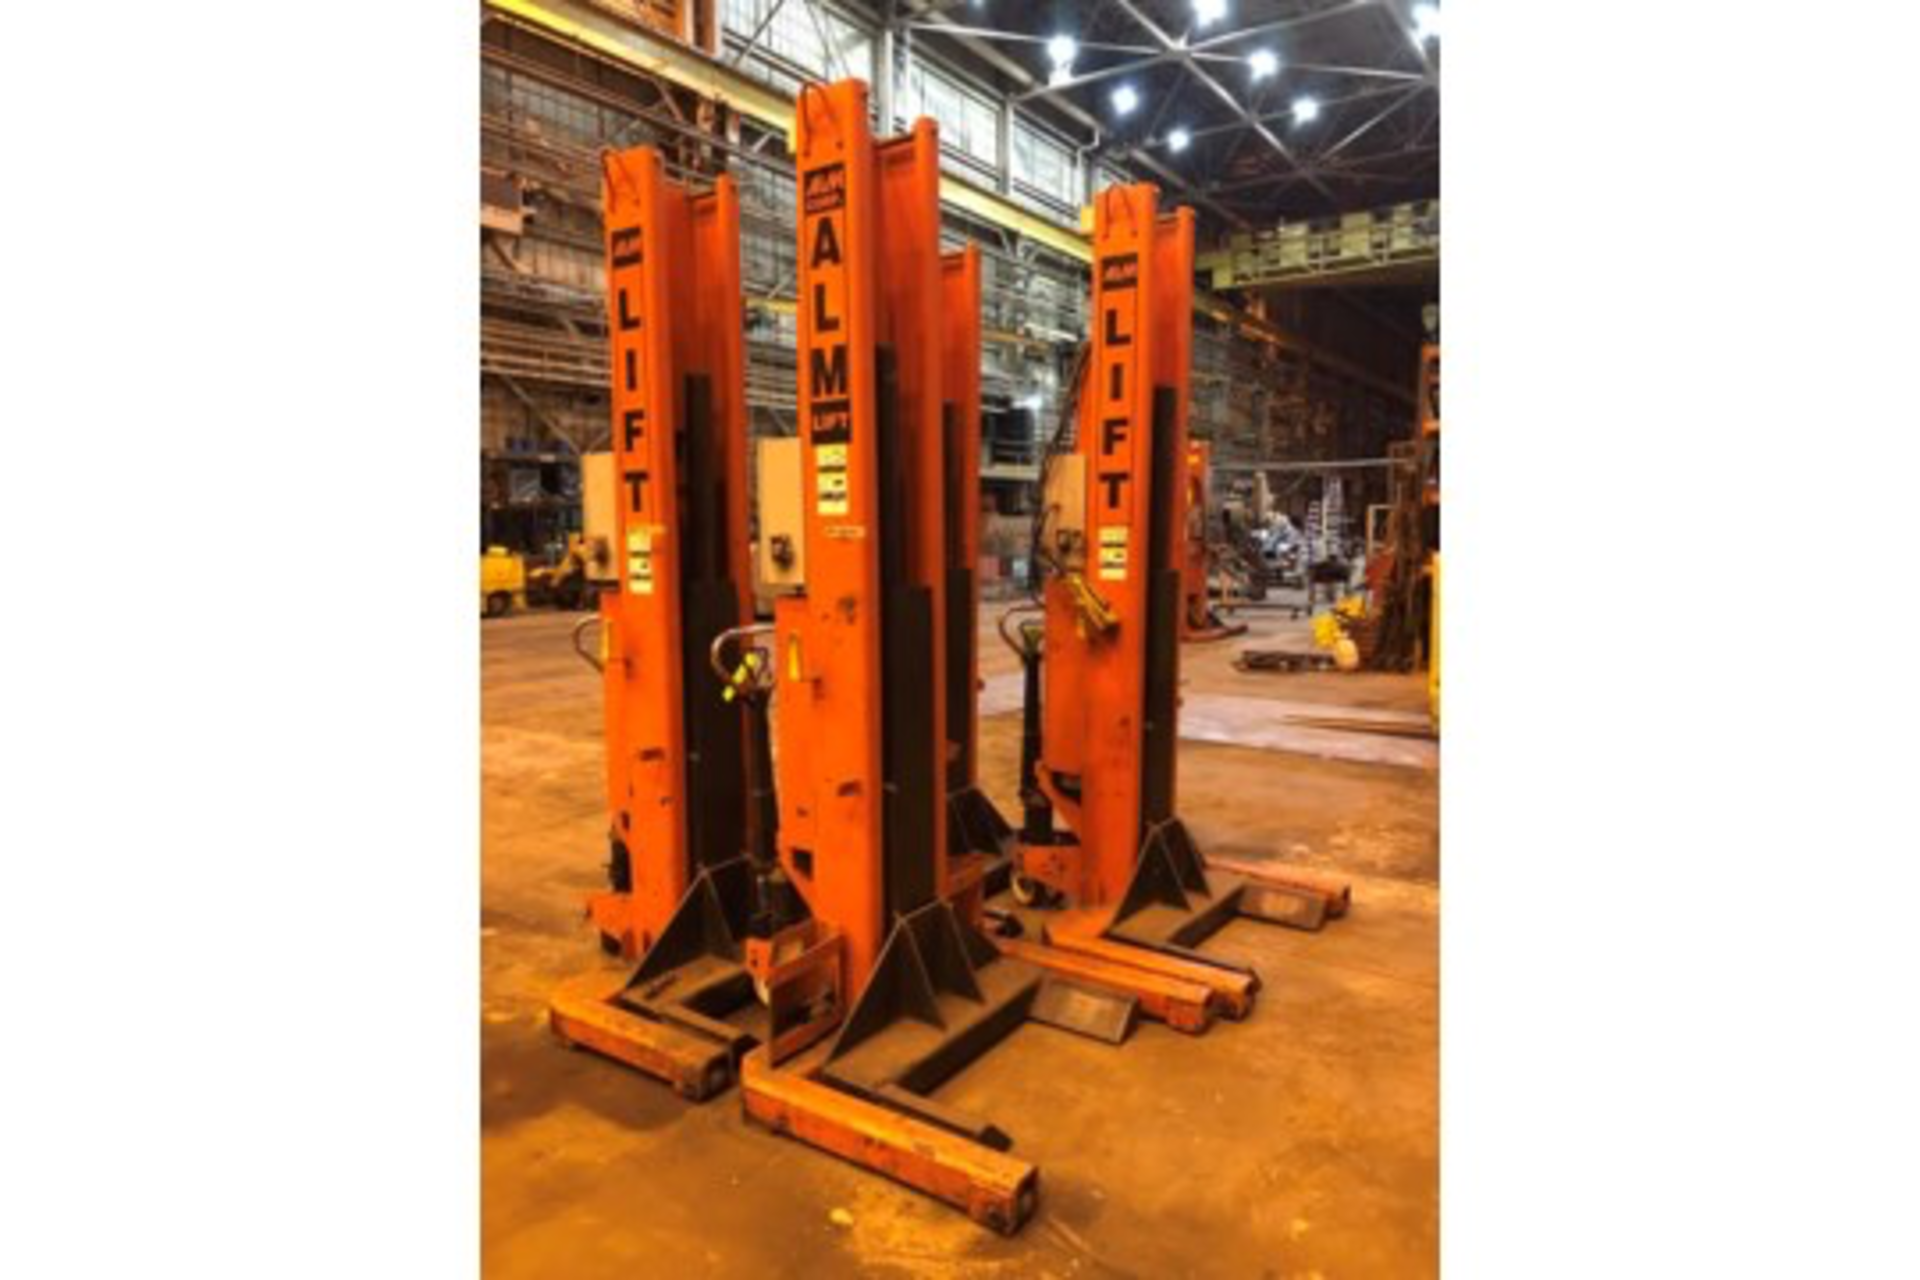 Lot 13 - Lot of 4 ALM Portable Truck Jacks 18,000 lbs cap